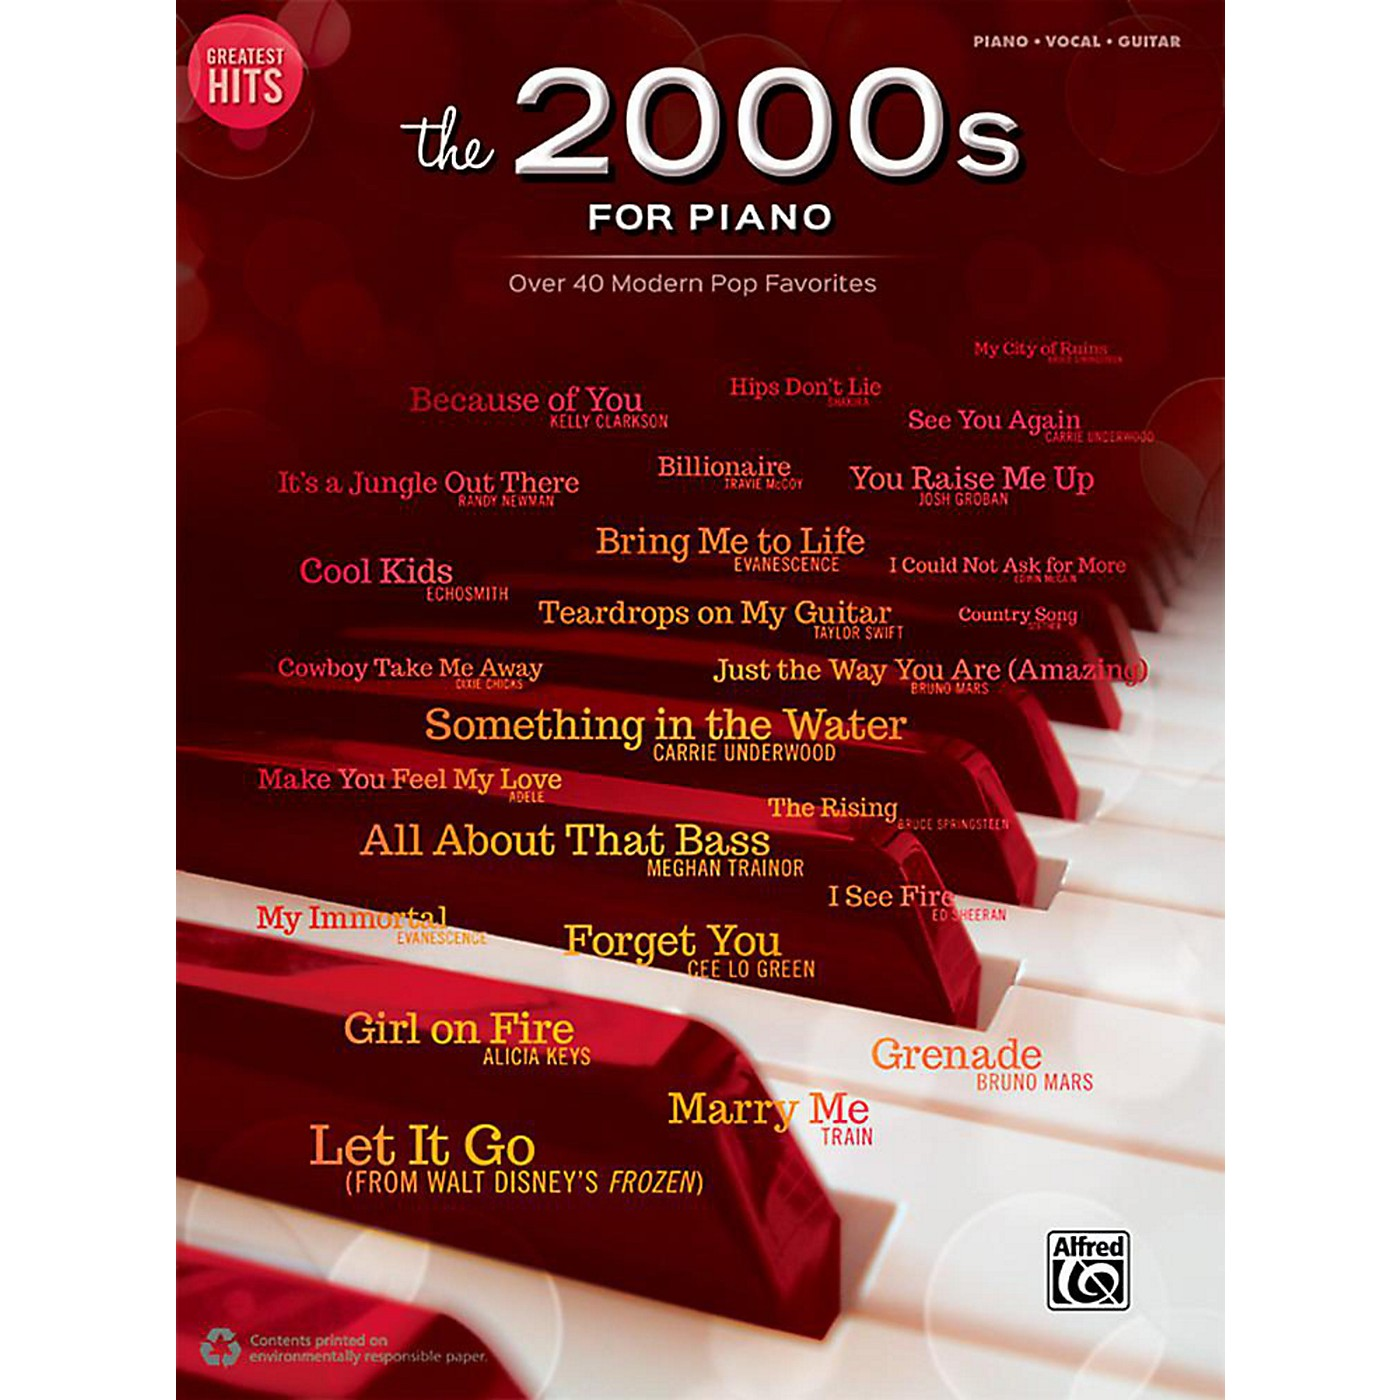 Alfred Greatest Hits: The 2000s for Piano - Piano/Vocal/Guitar Songbook thumbnail